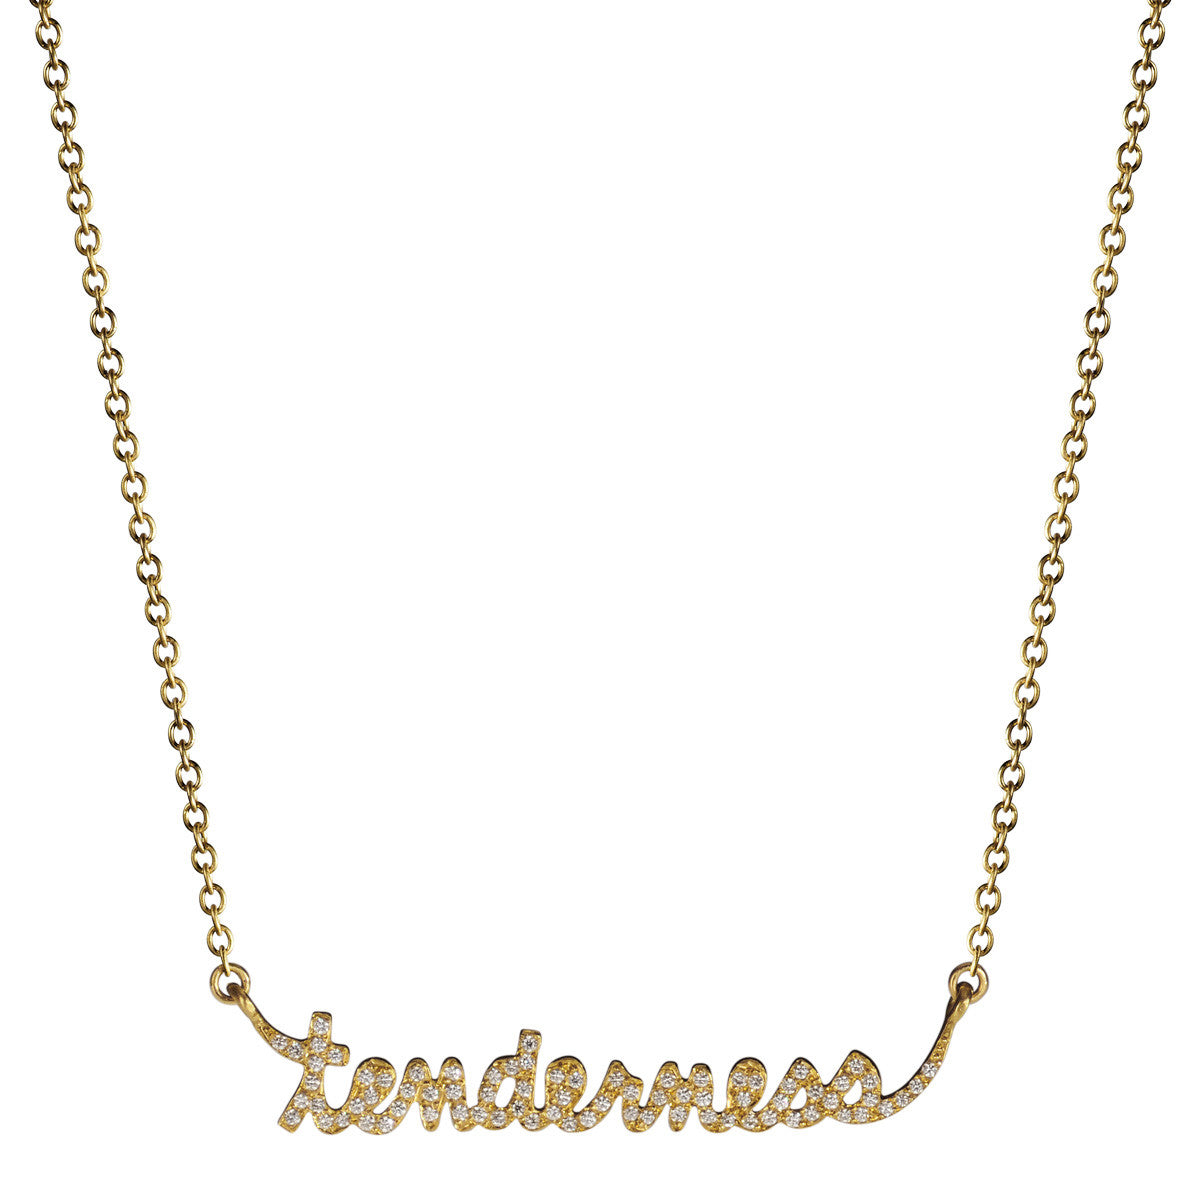 18K Gold Pave 'Tenderness' Pendant with Diamonds